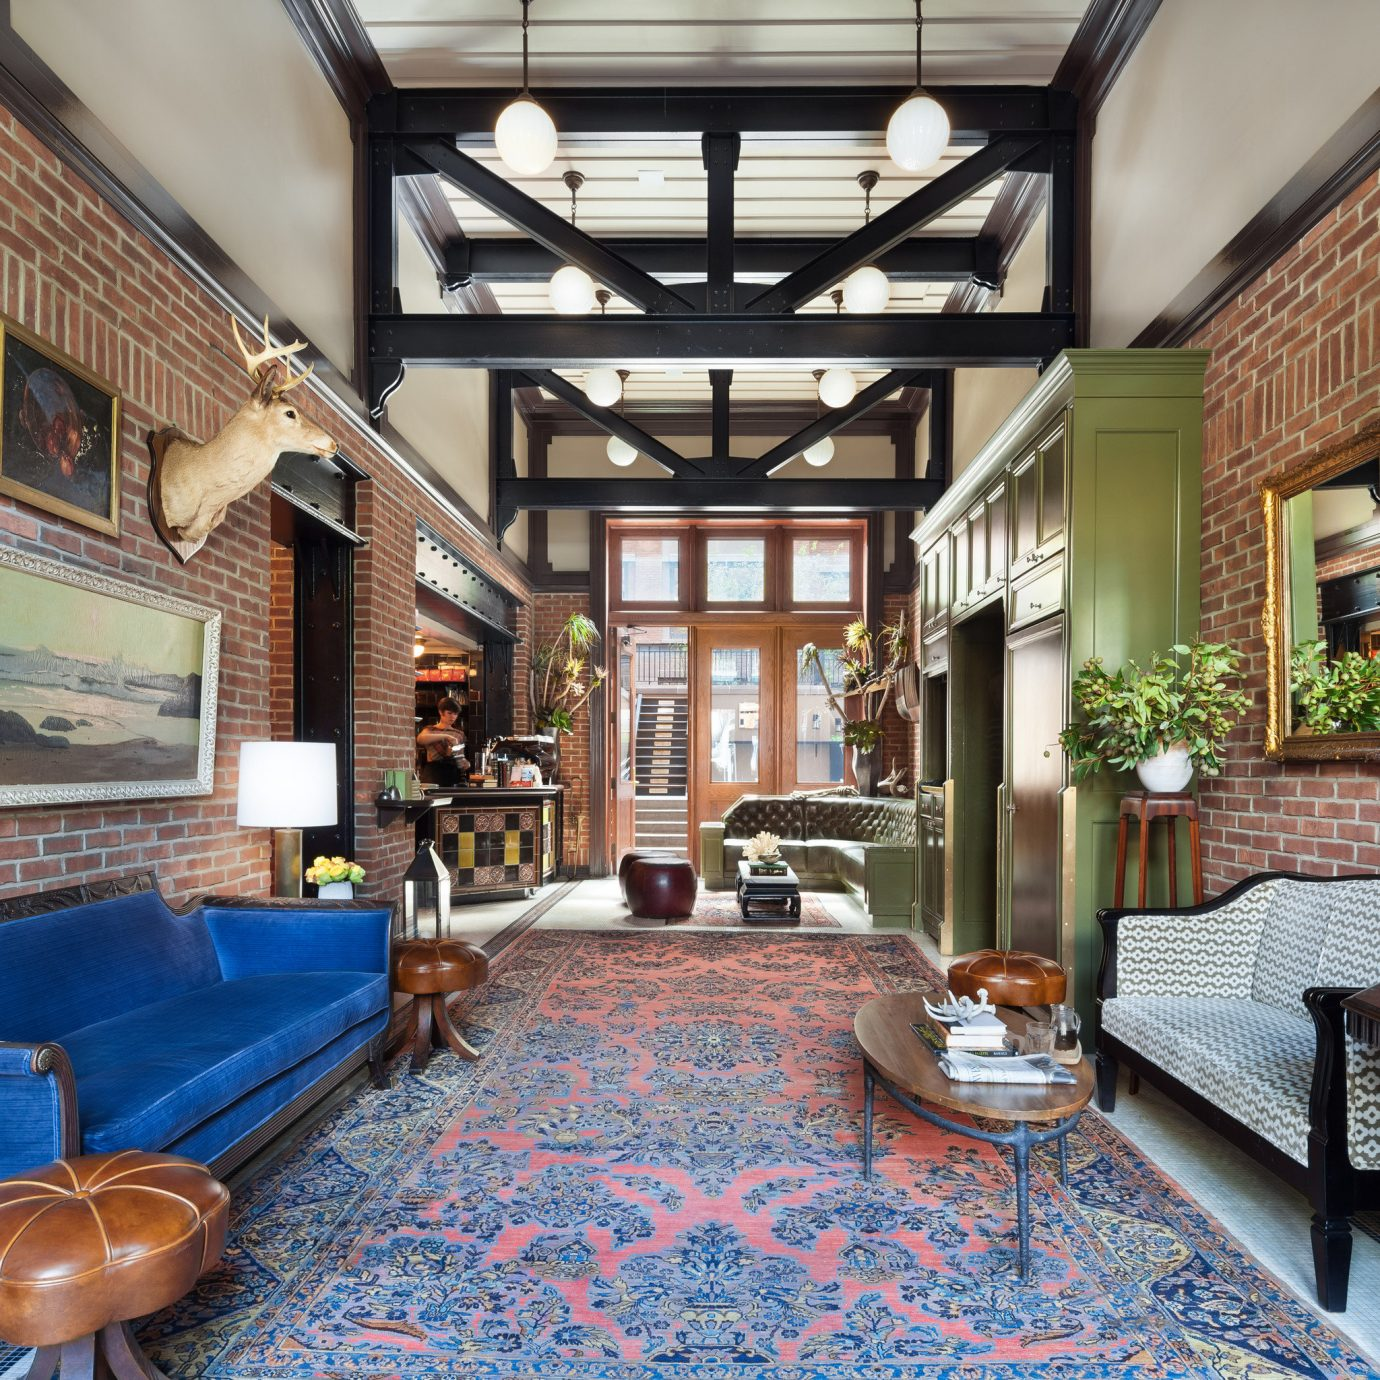 Hotels Luxury Travel Romantic Hotels living room Lobby home